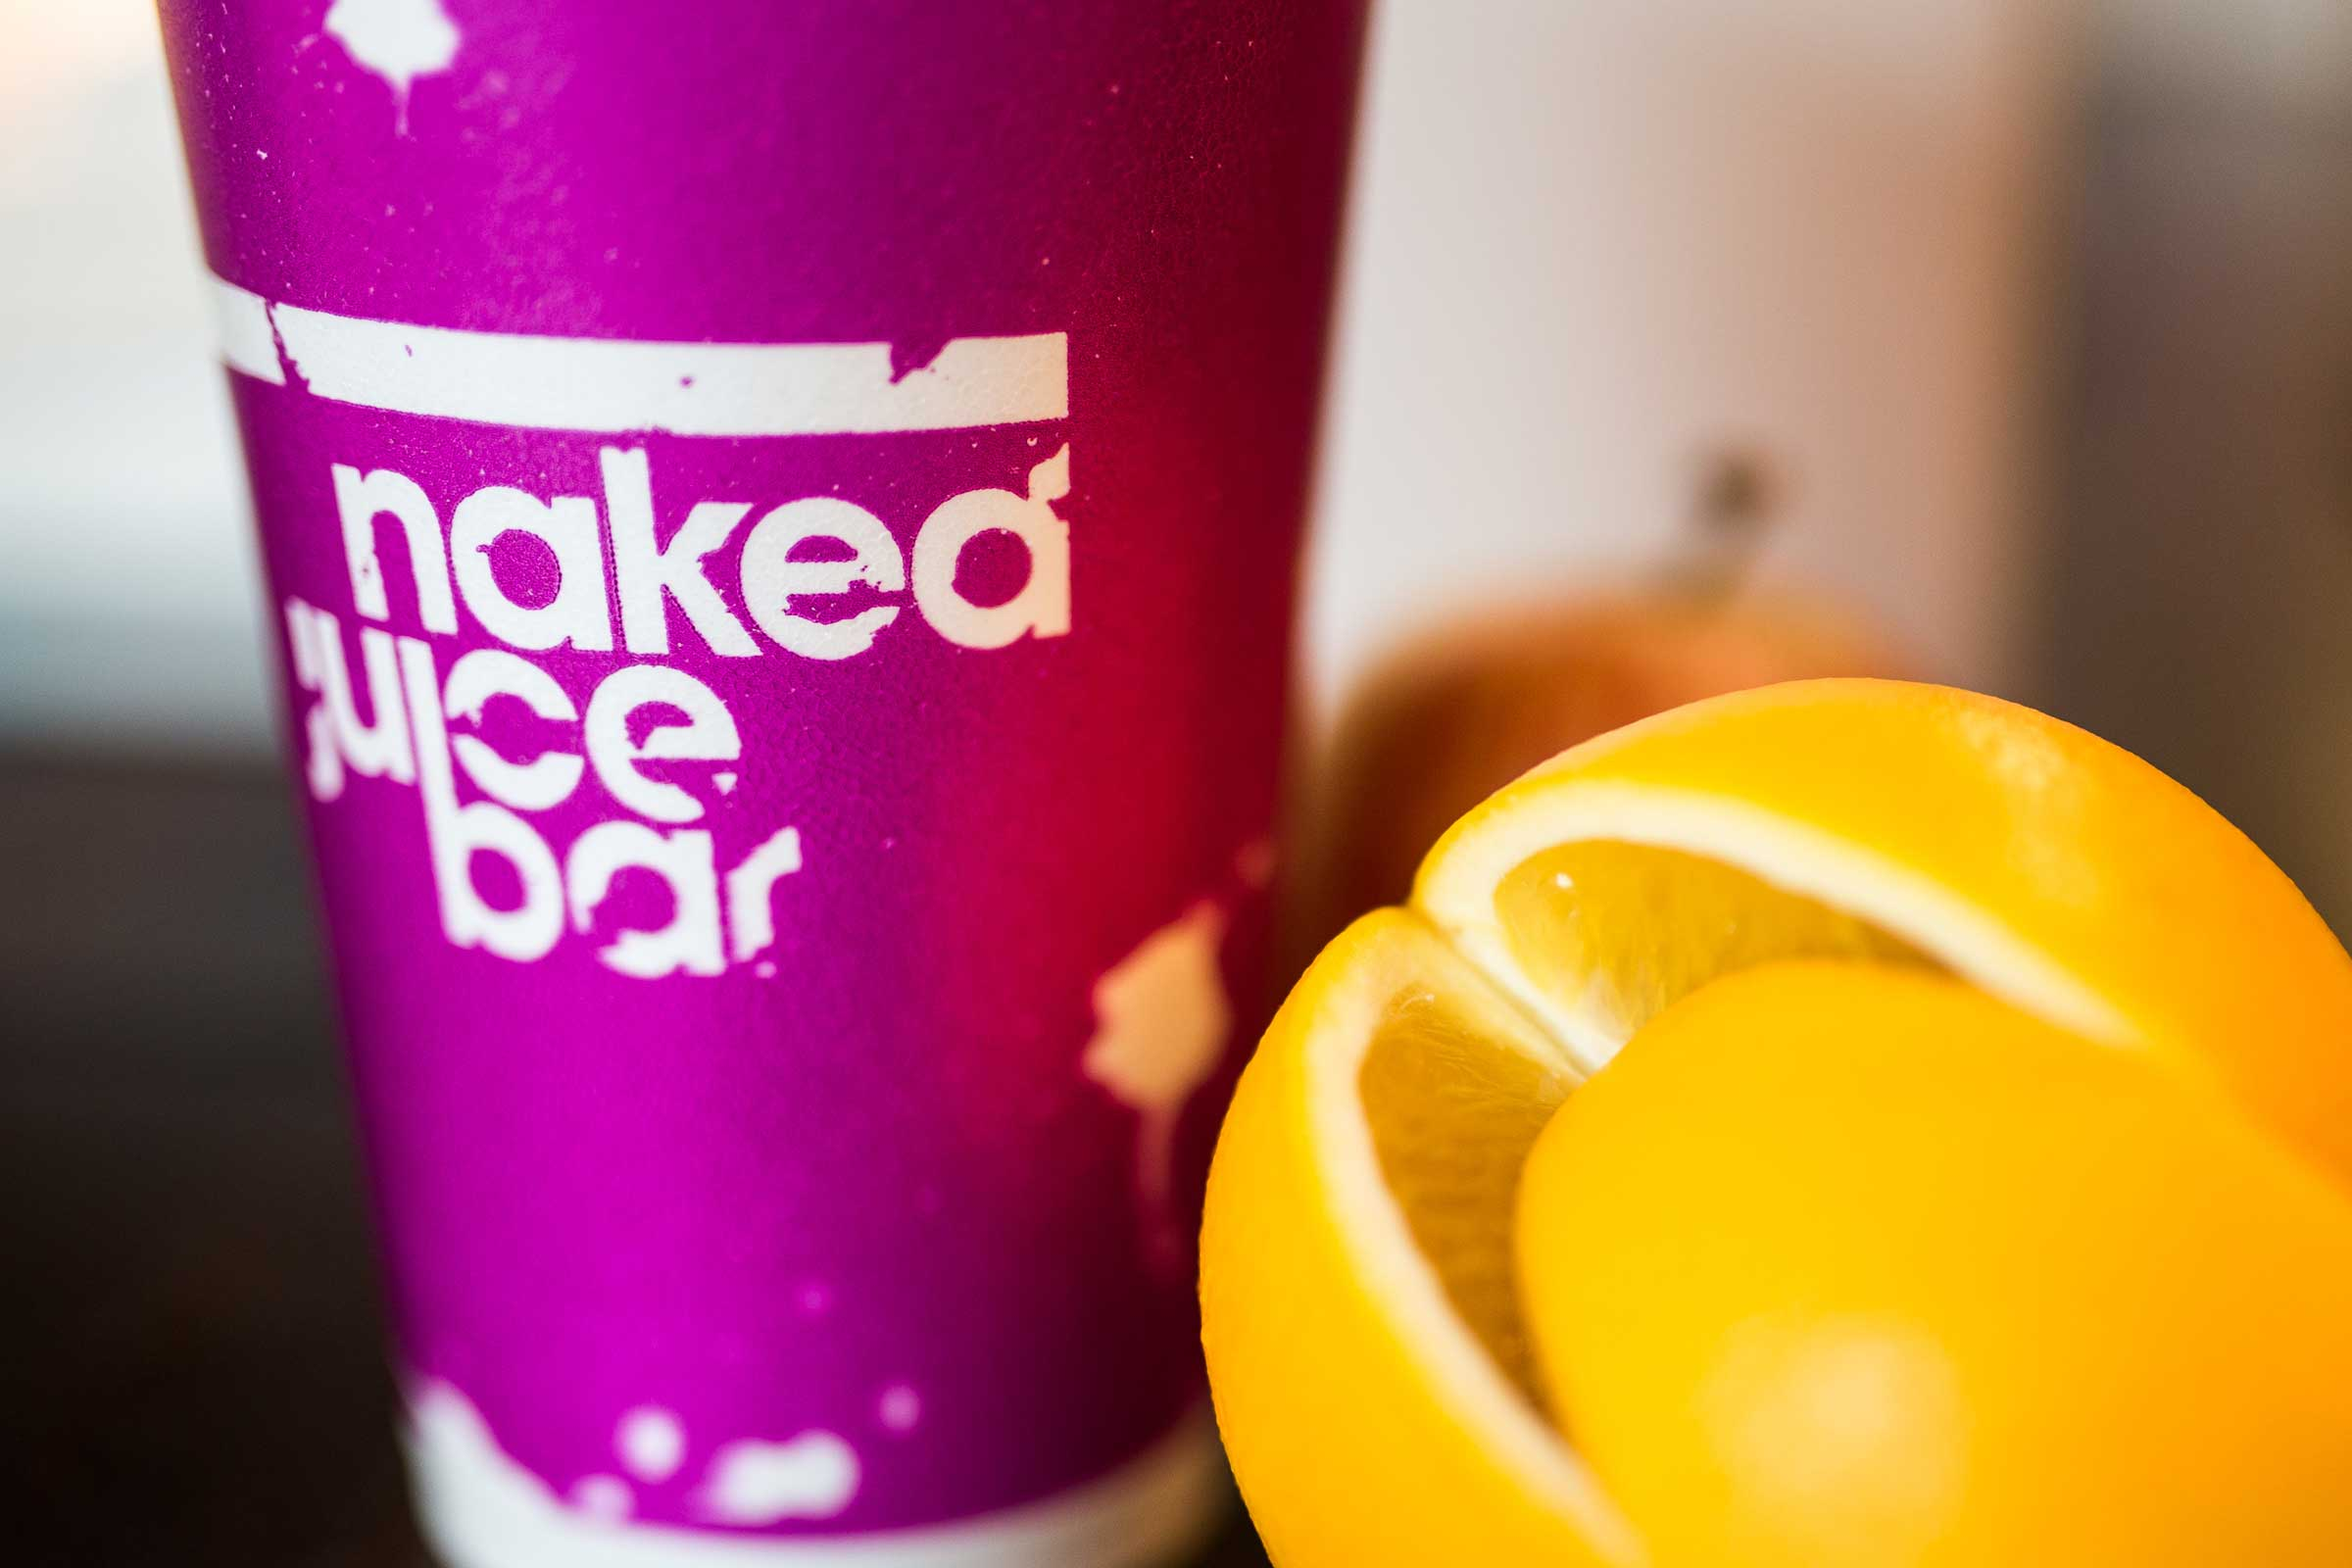 Naked juice bar1.jpg